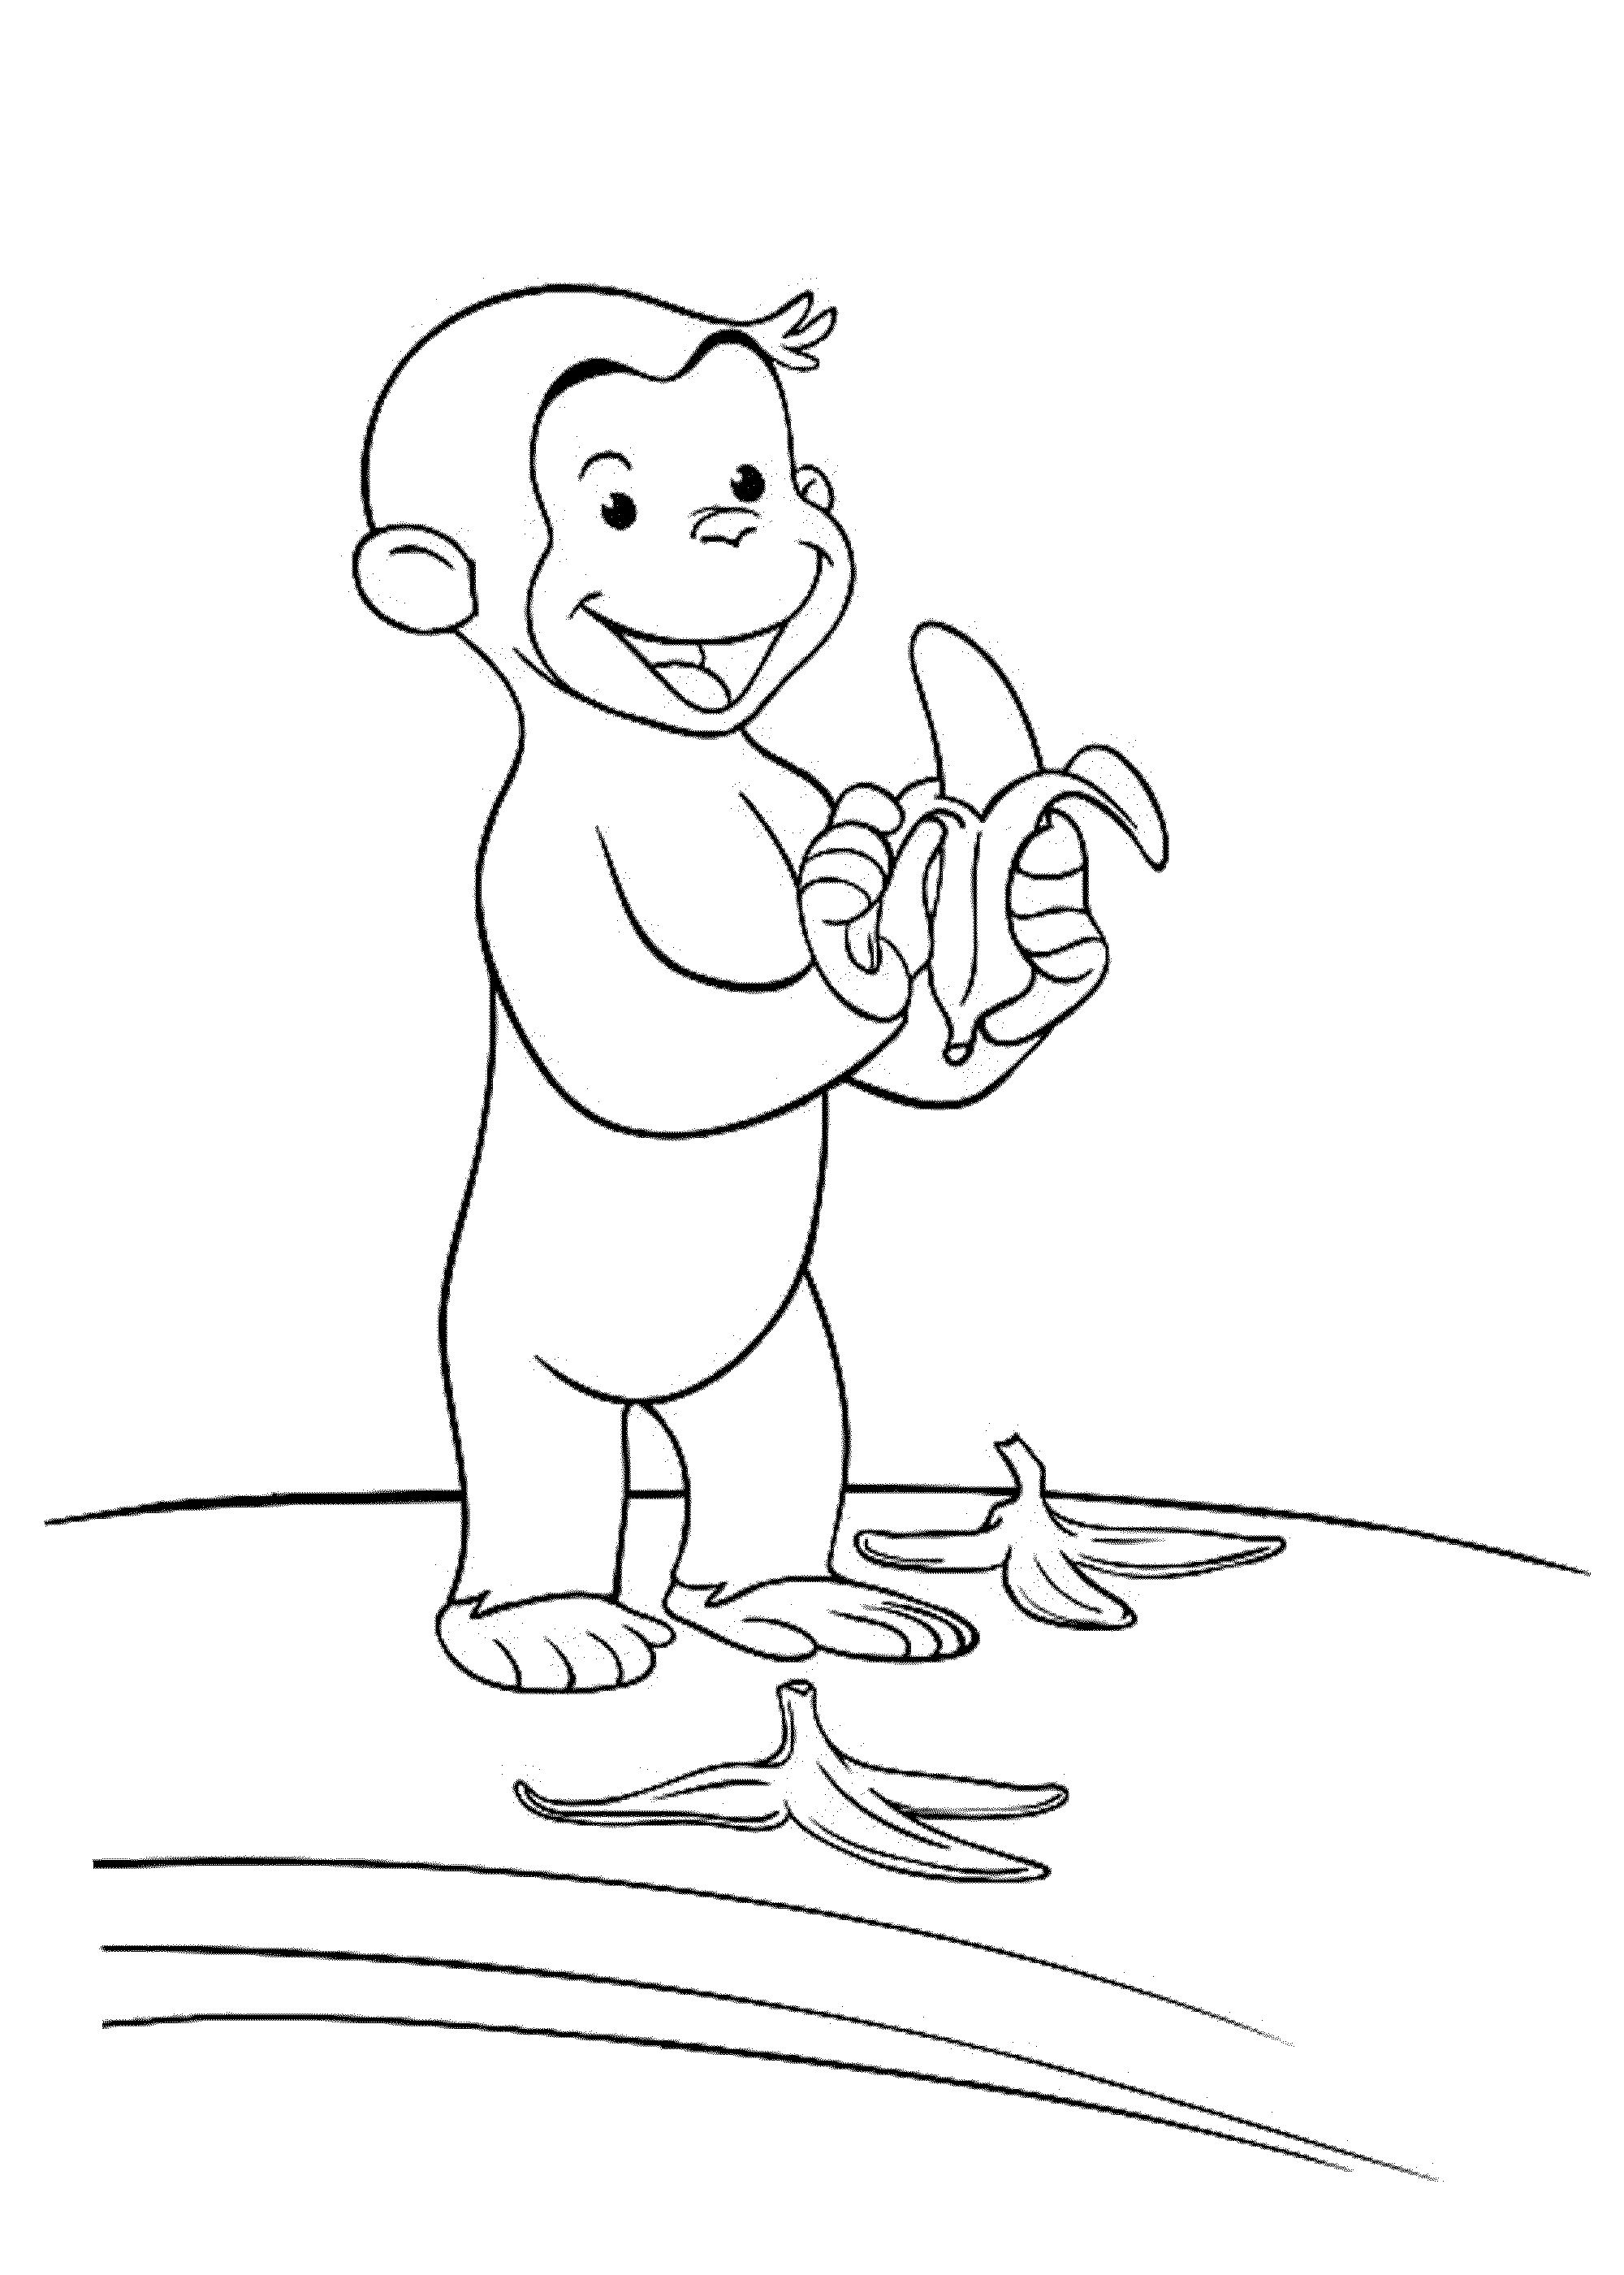 Coloring book curious george - Curious George Coloring Pages Yahoo Image Search Results